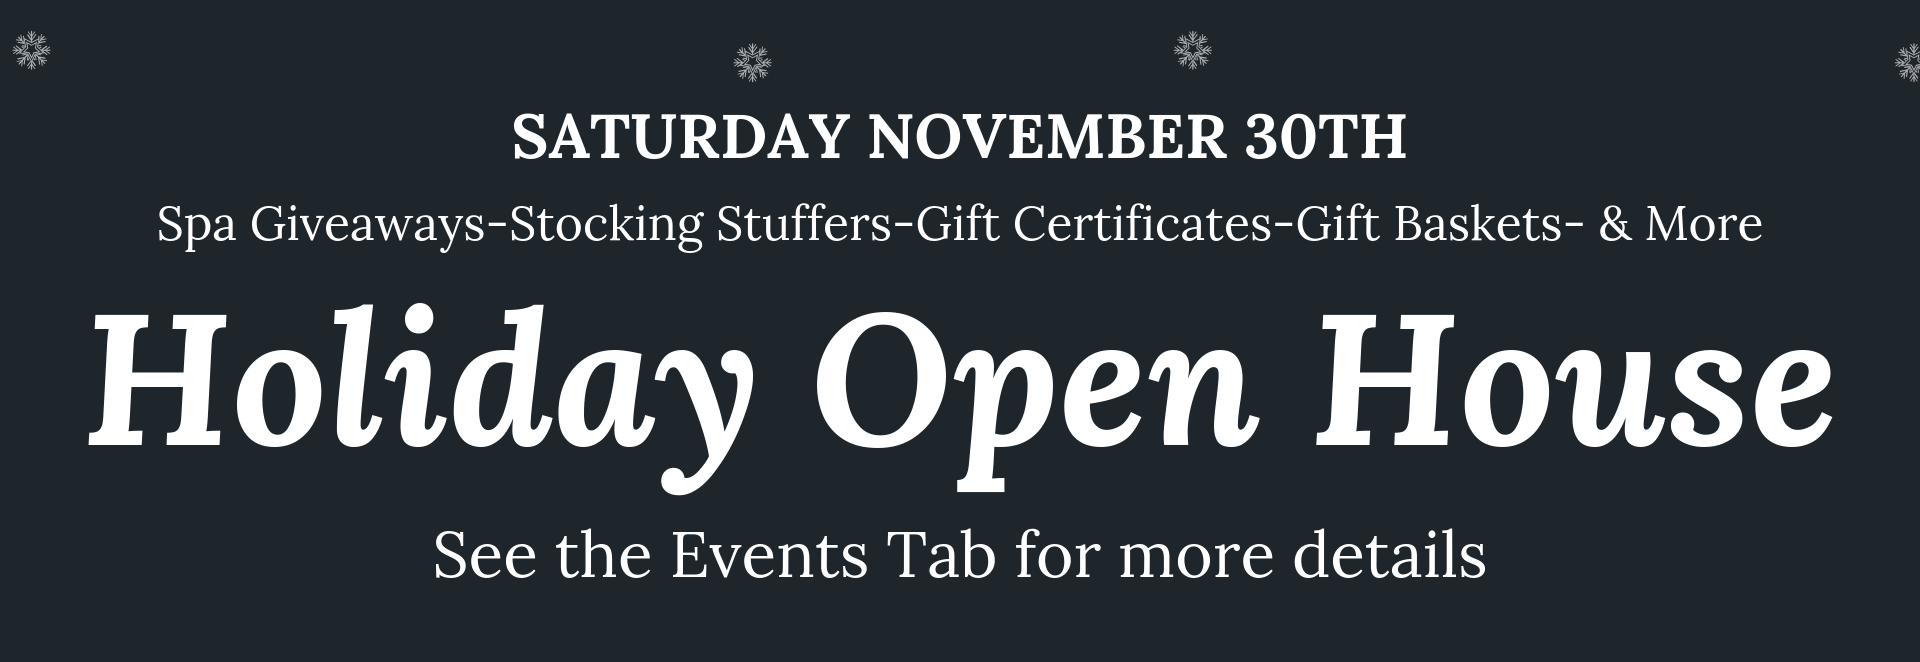 2019 holiday open House- Saturday November 30th